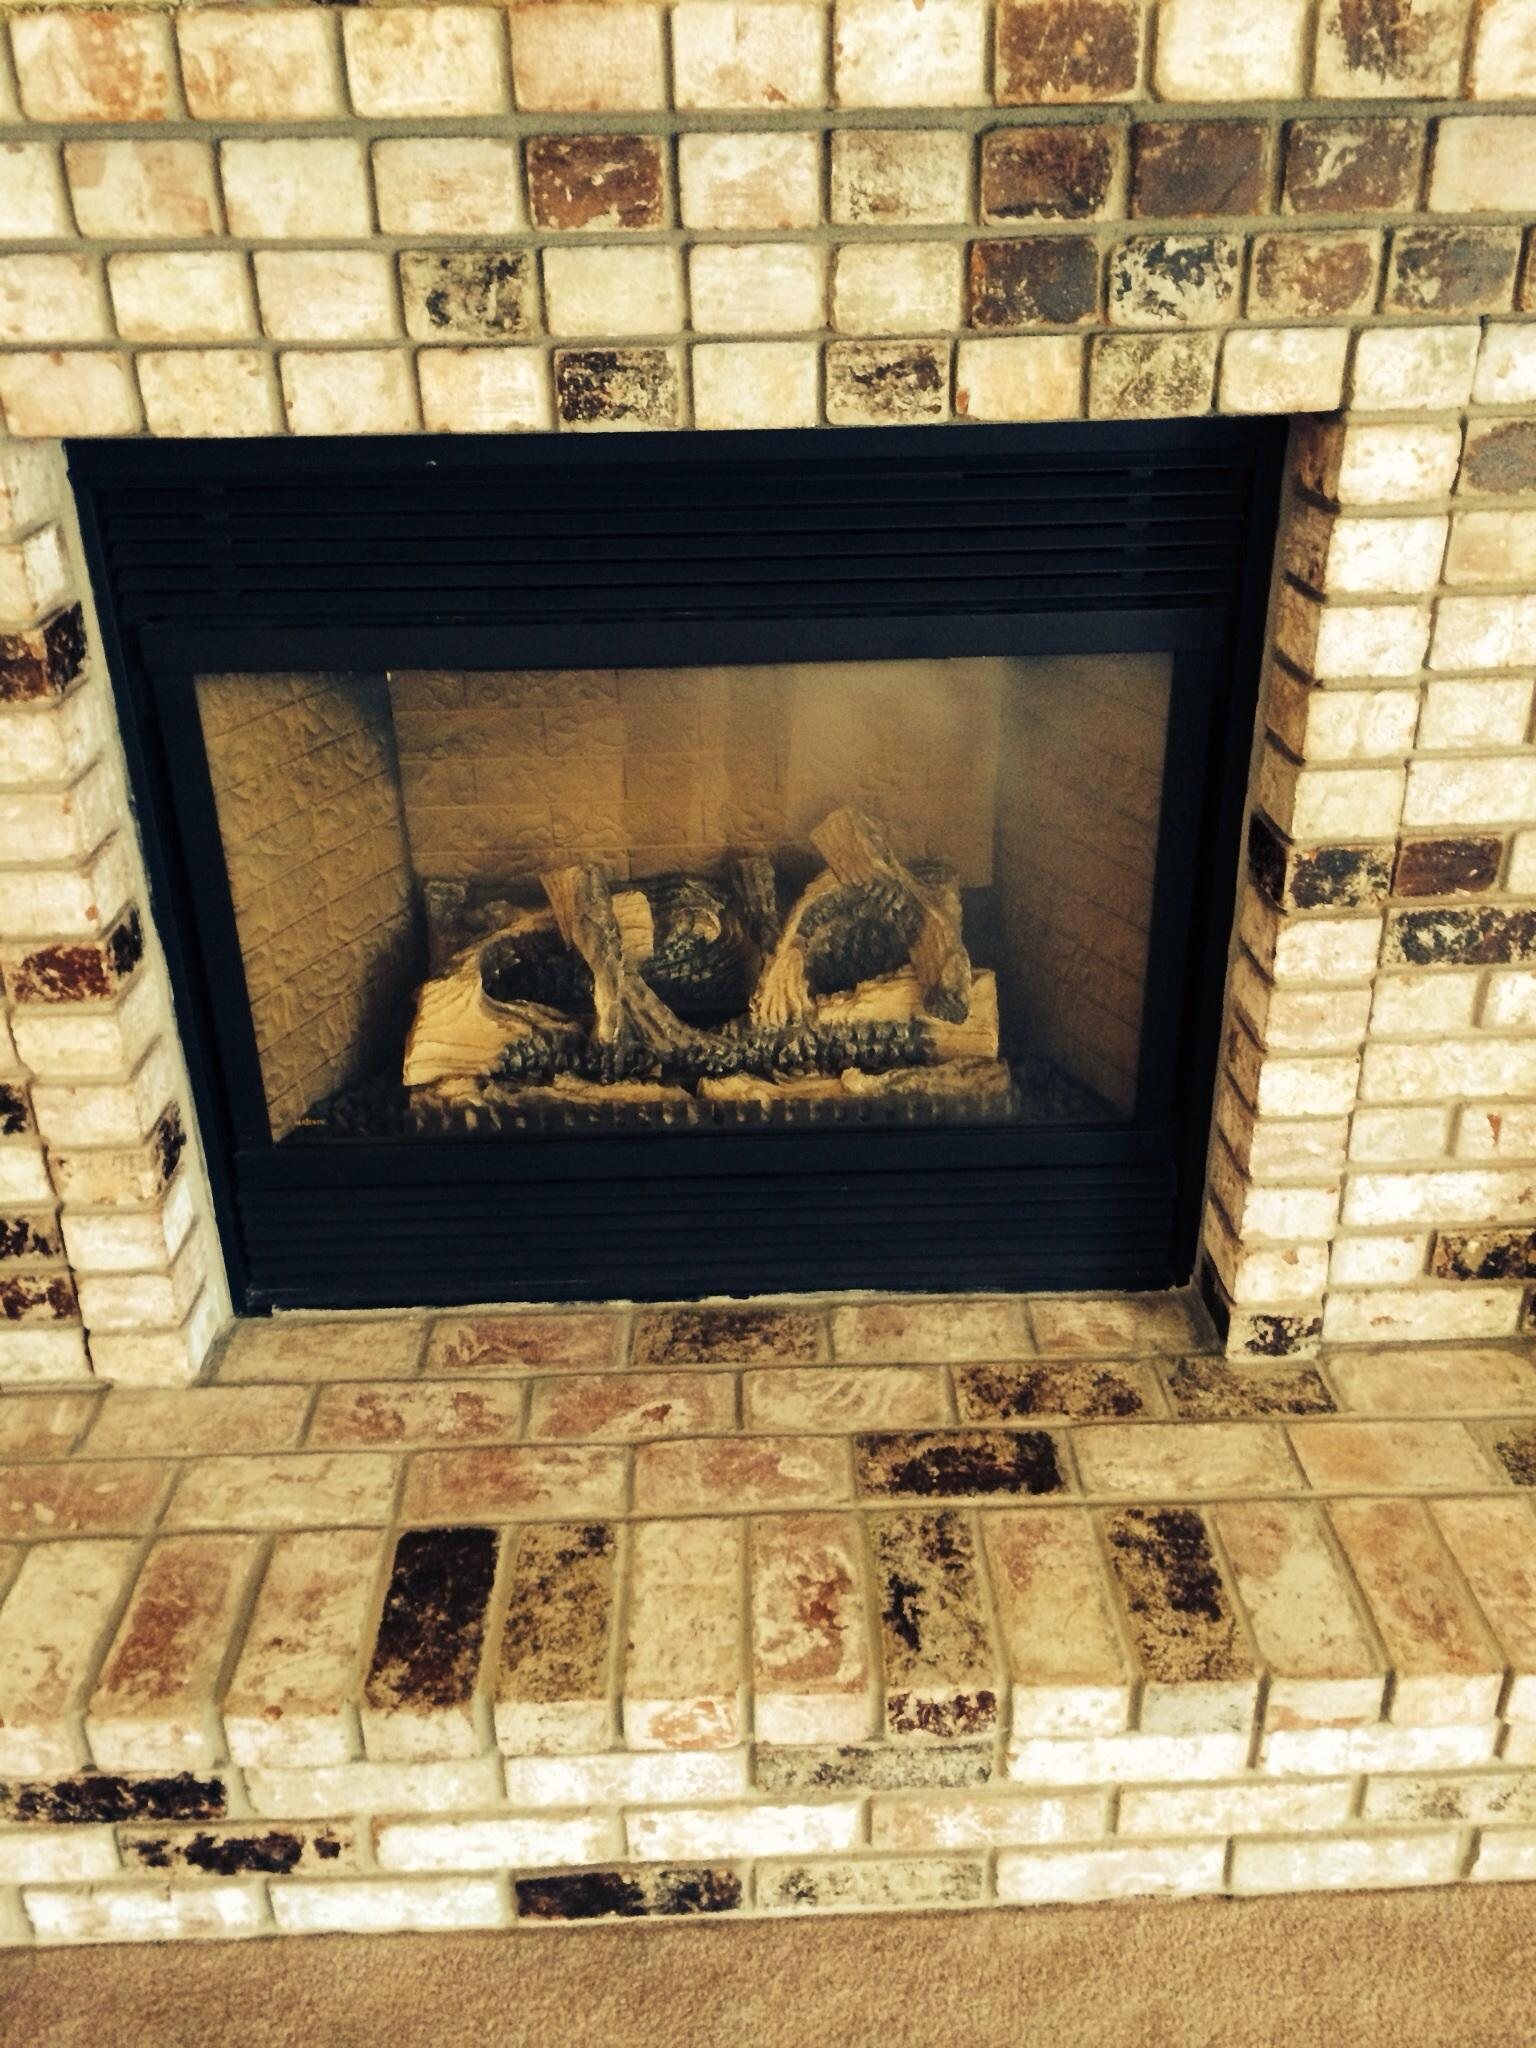 Gas fireplace gets inspected as part of a home inspection